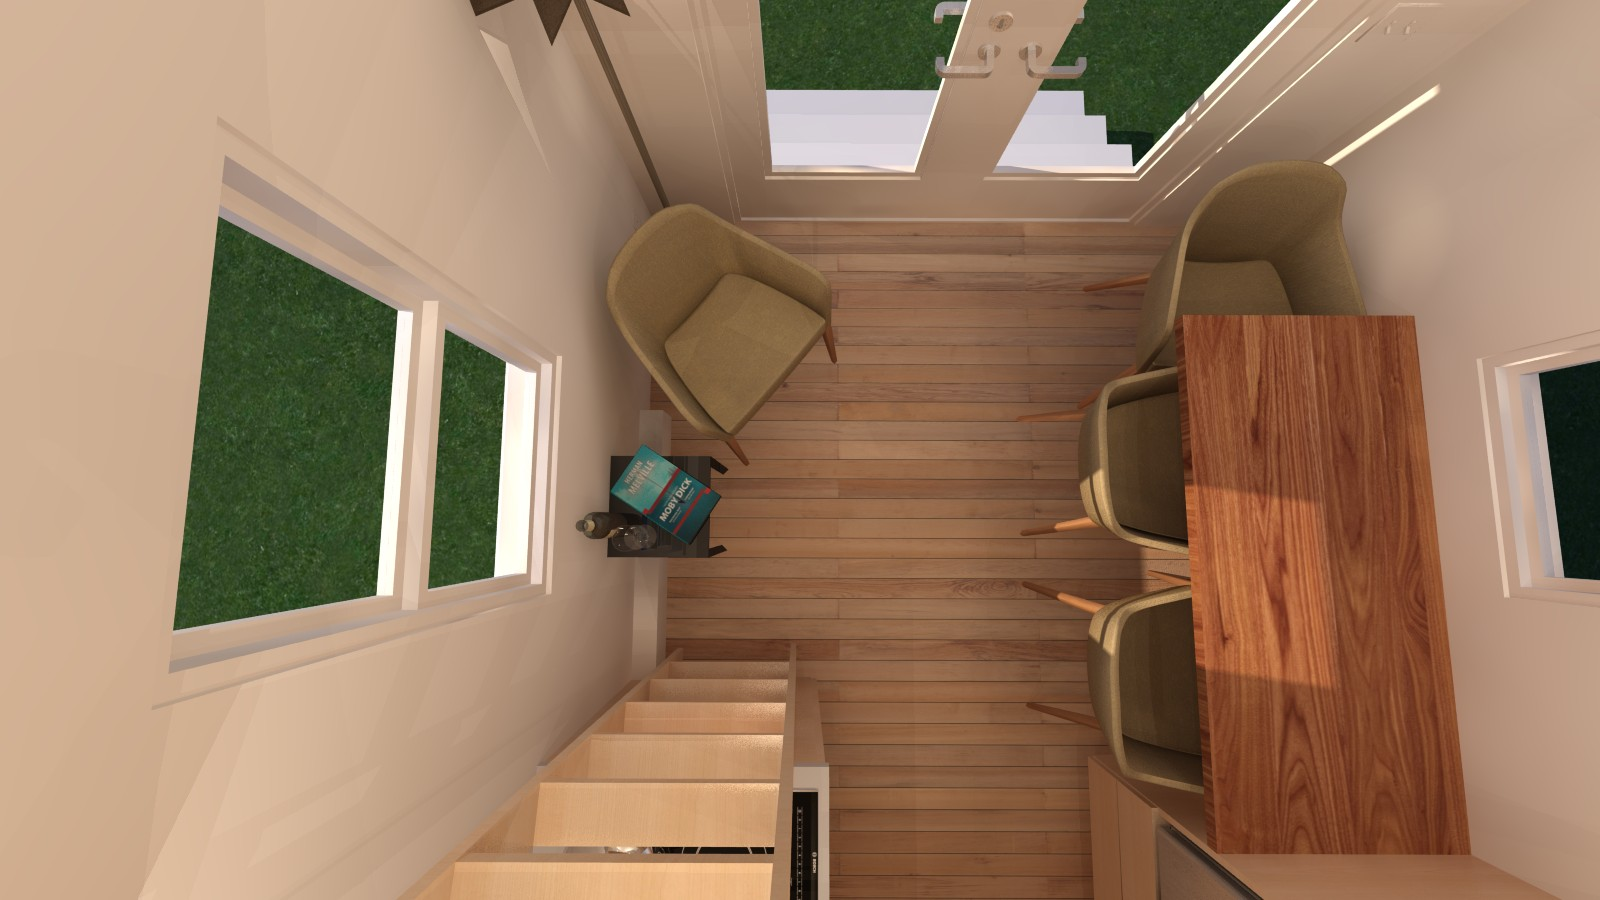 Manchester 14 Tiny House - View from Loft